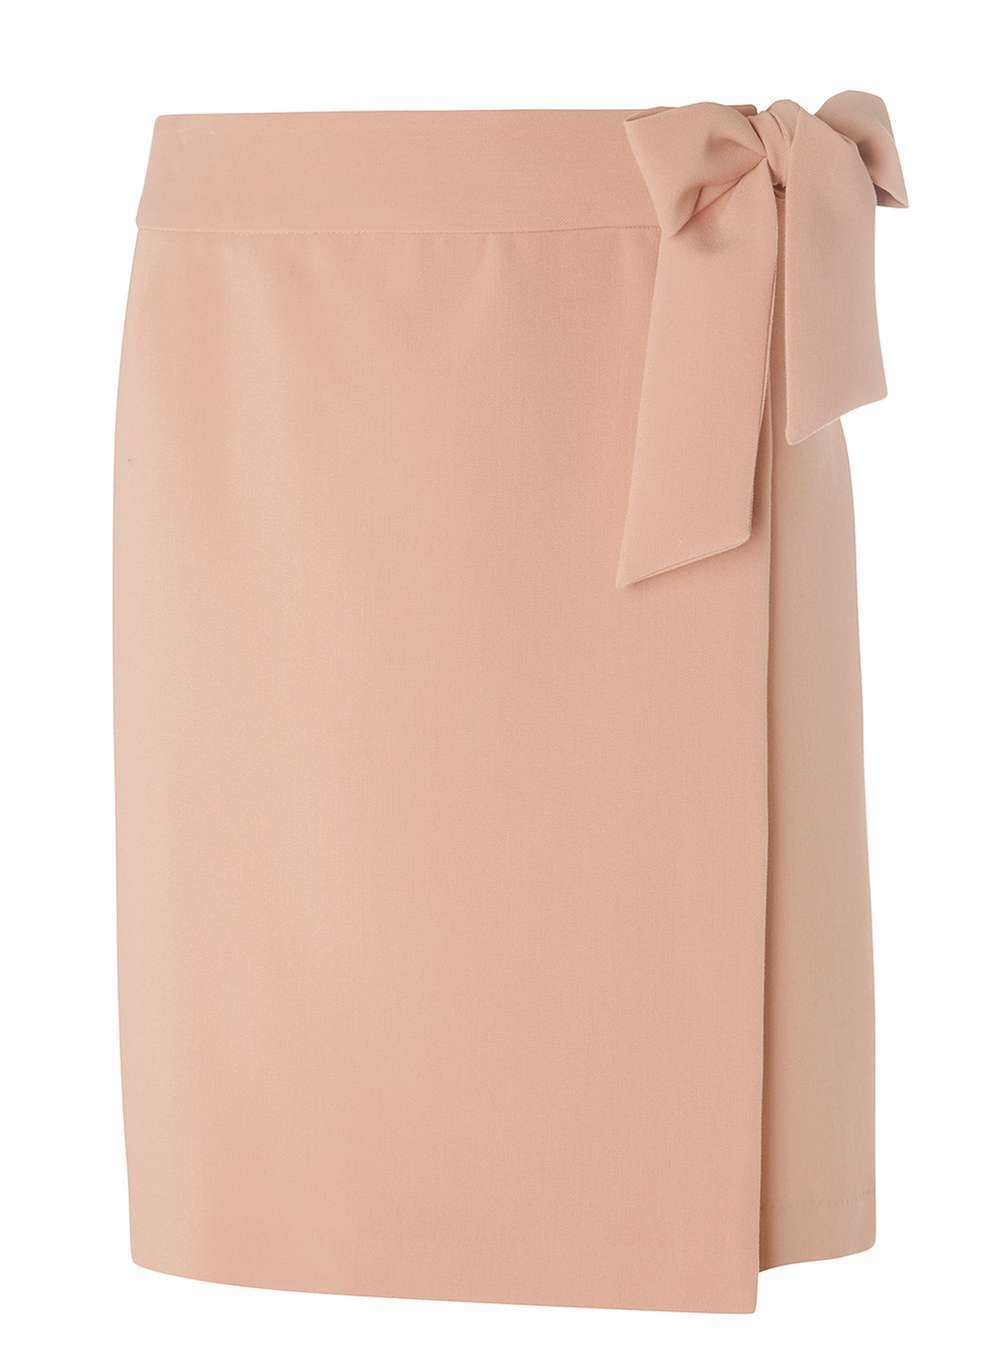 Womens Blush Tie Front Skirt Brown - pattern: plain; style: wrap/faux wrap; waist detail: belted waist/tie at waist/drawstring; waist: mid/regular rise; predominant colour: blush; occasions: work, occasion; length: just above the knee; fibres: polyester/polyamide - stretch; fit: straight cut; pattern type: fabric; texture group: other - light to midweight; wardrobe: basic; season: a/w 2016